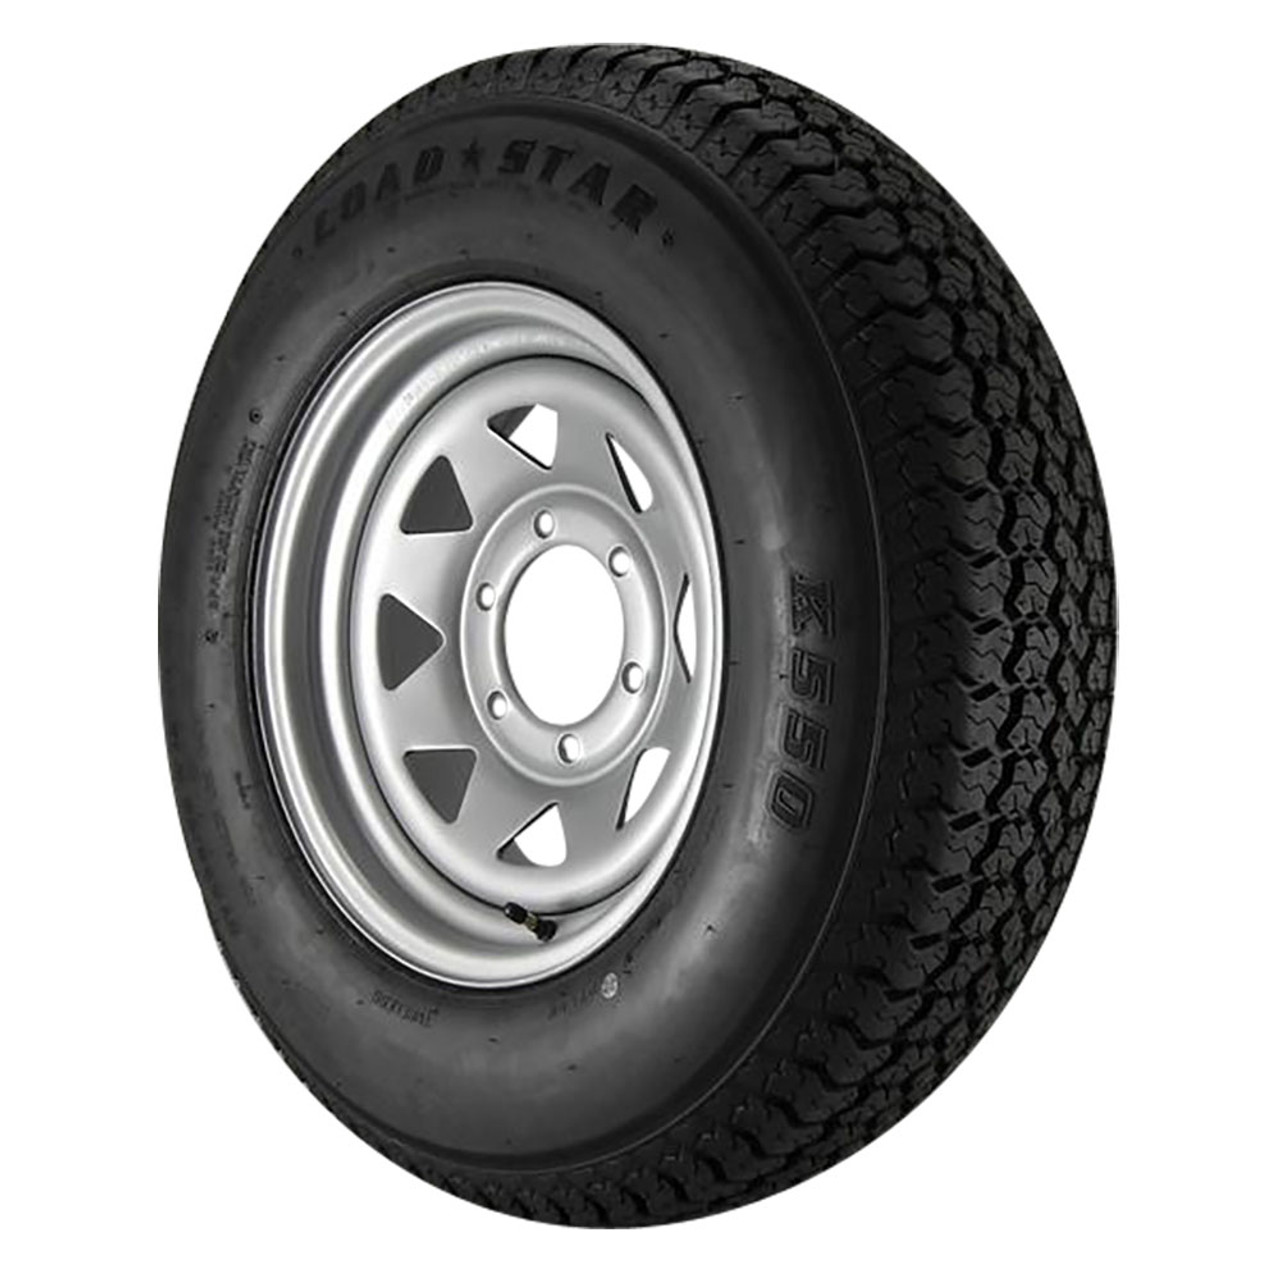 ST225/75D15 Loadstar Trailer Tire LRD on 6 Bolt Silver Spoke Wheel